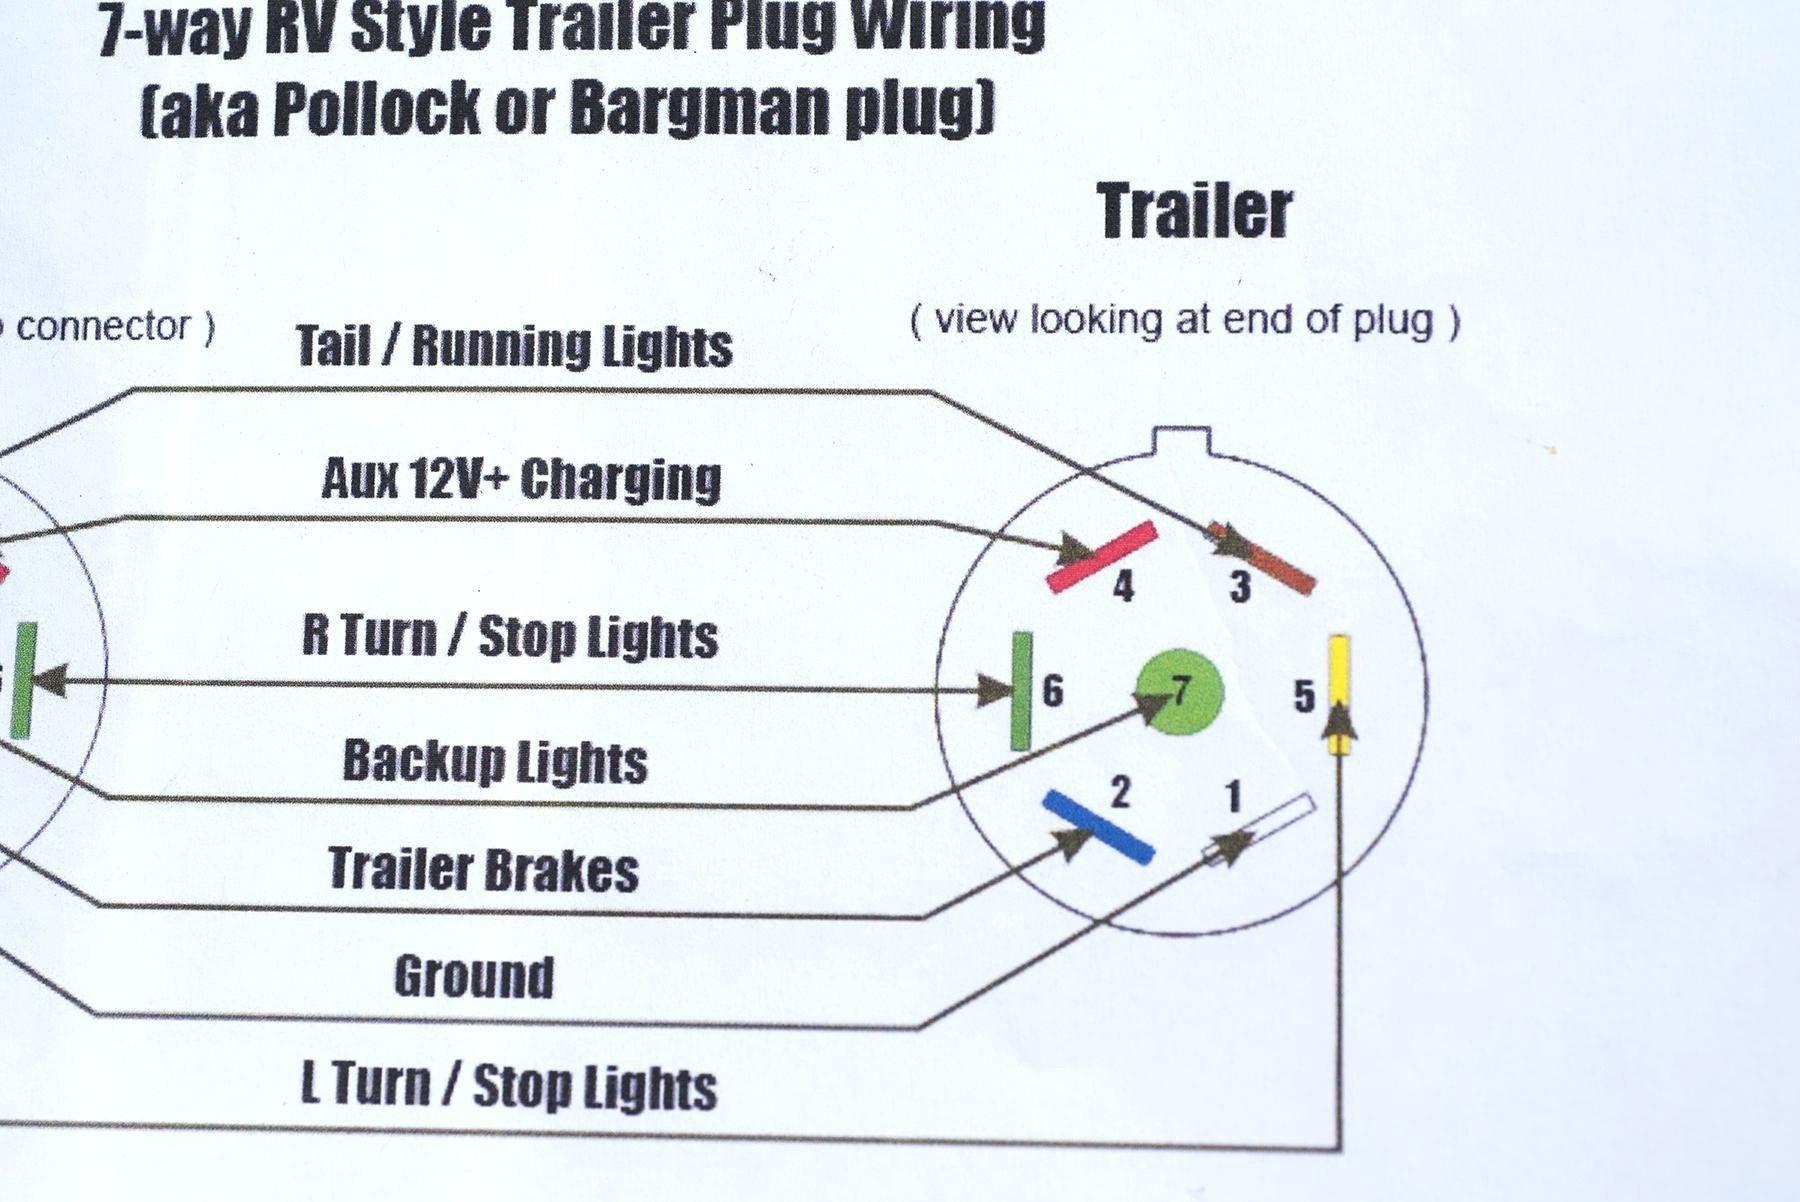 Gm 6 Way Wiring Diagram | Wiring Library - 6 Way Trailer Plug Wiring Diagram